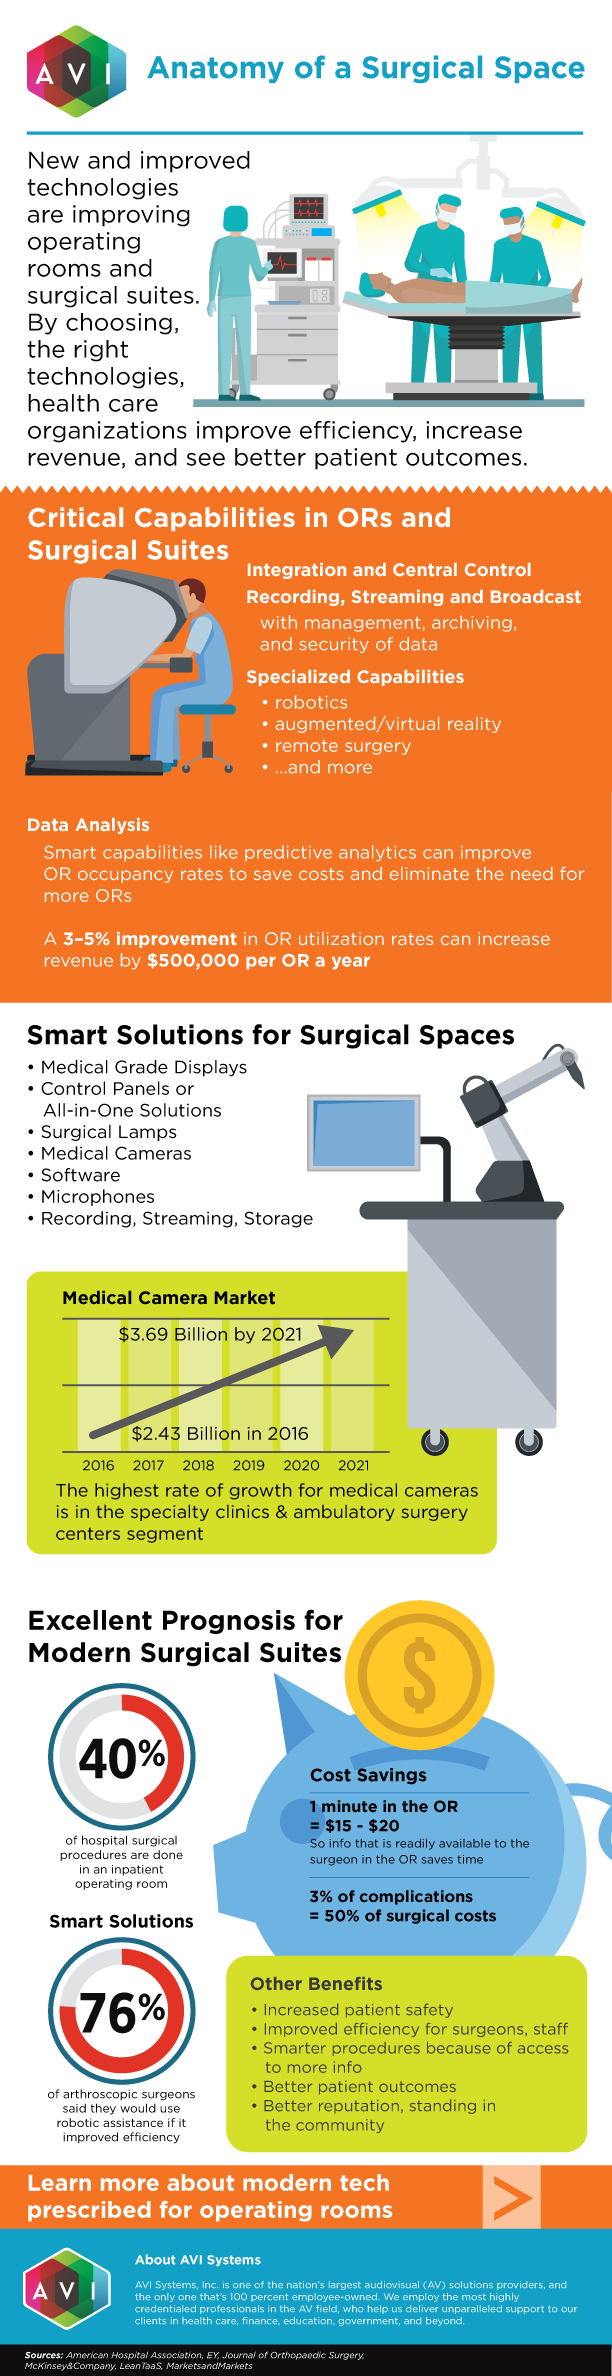 Anatomy of a Surgical Suite | AVI Systems